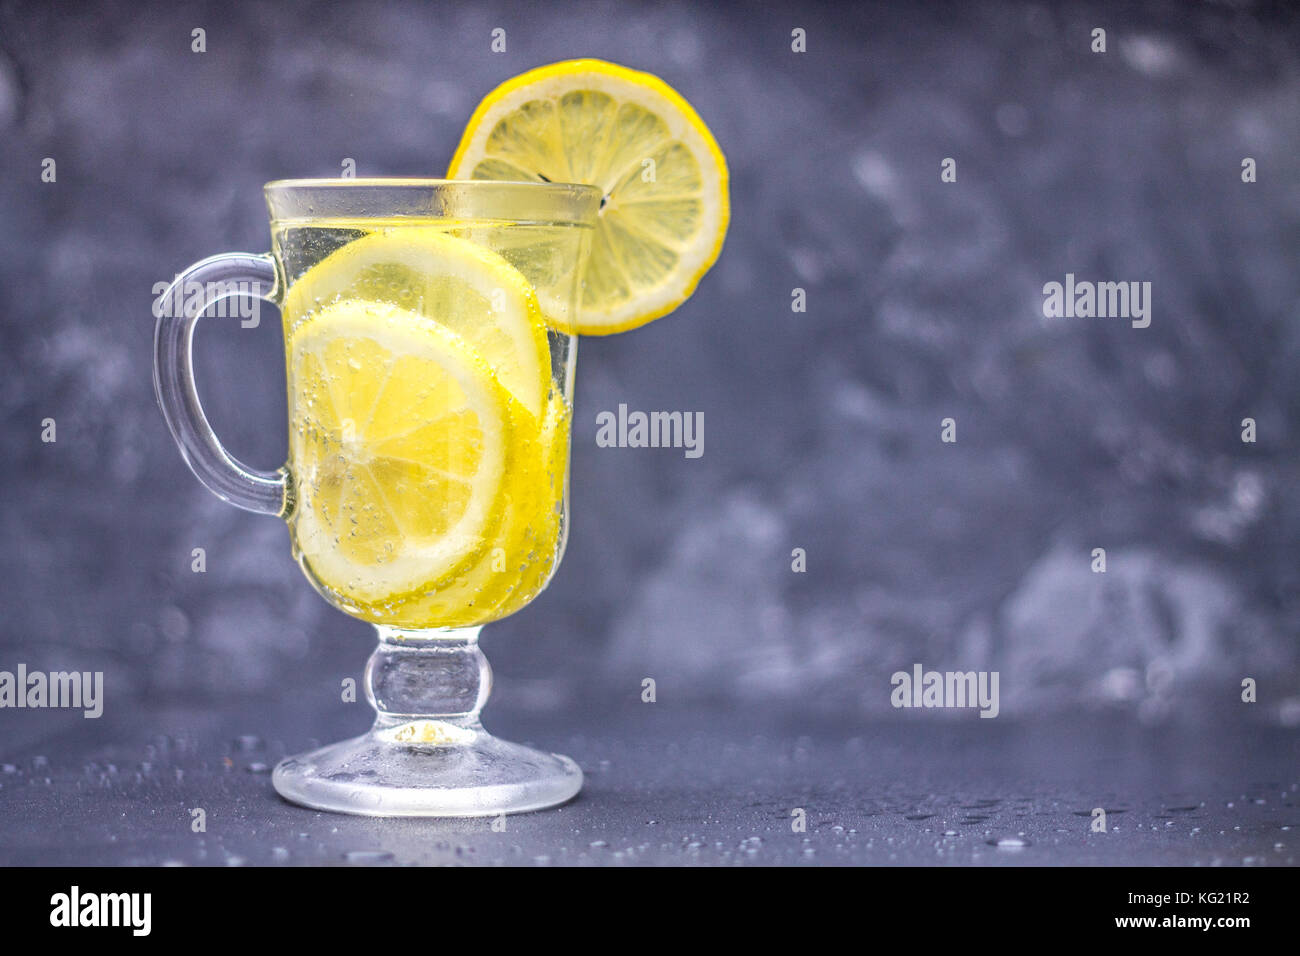 Homemade lemonade in a glass with a handle on a gray concrete background. Water with slices of lemon on a dark background. - Stock Image